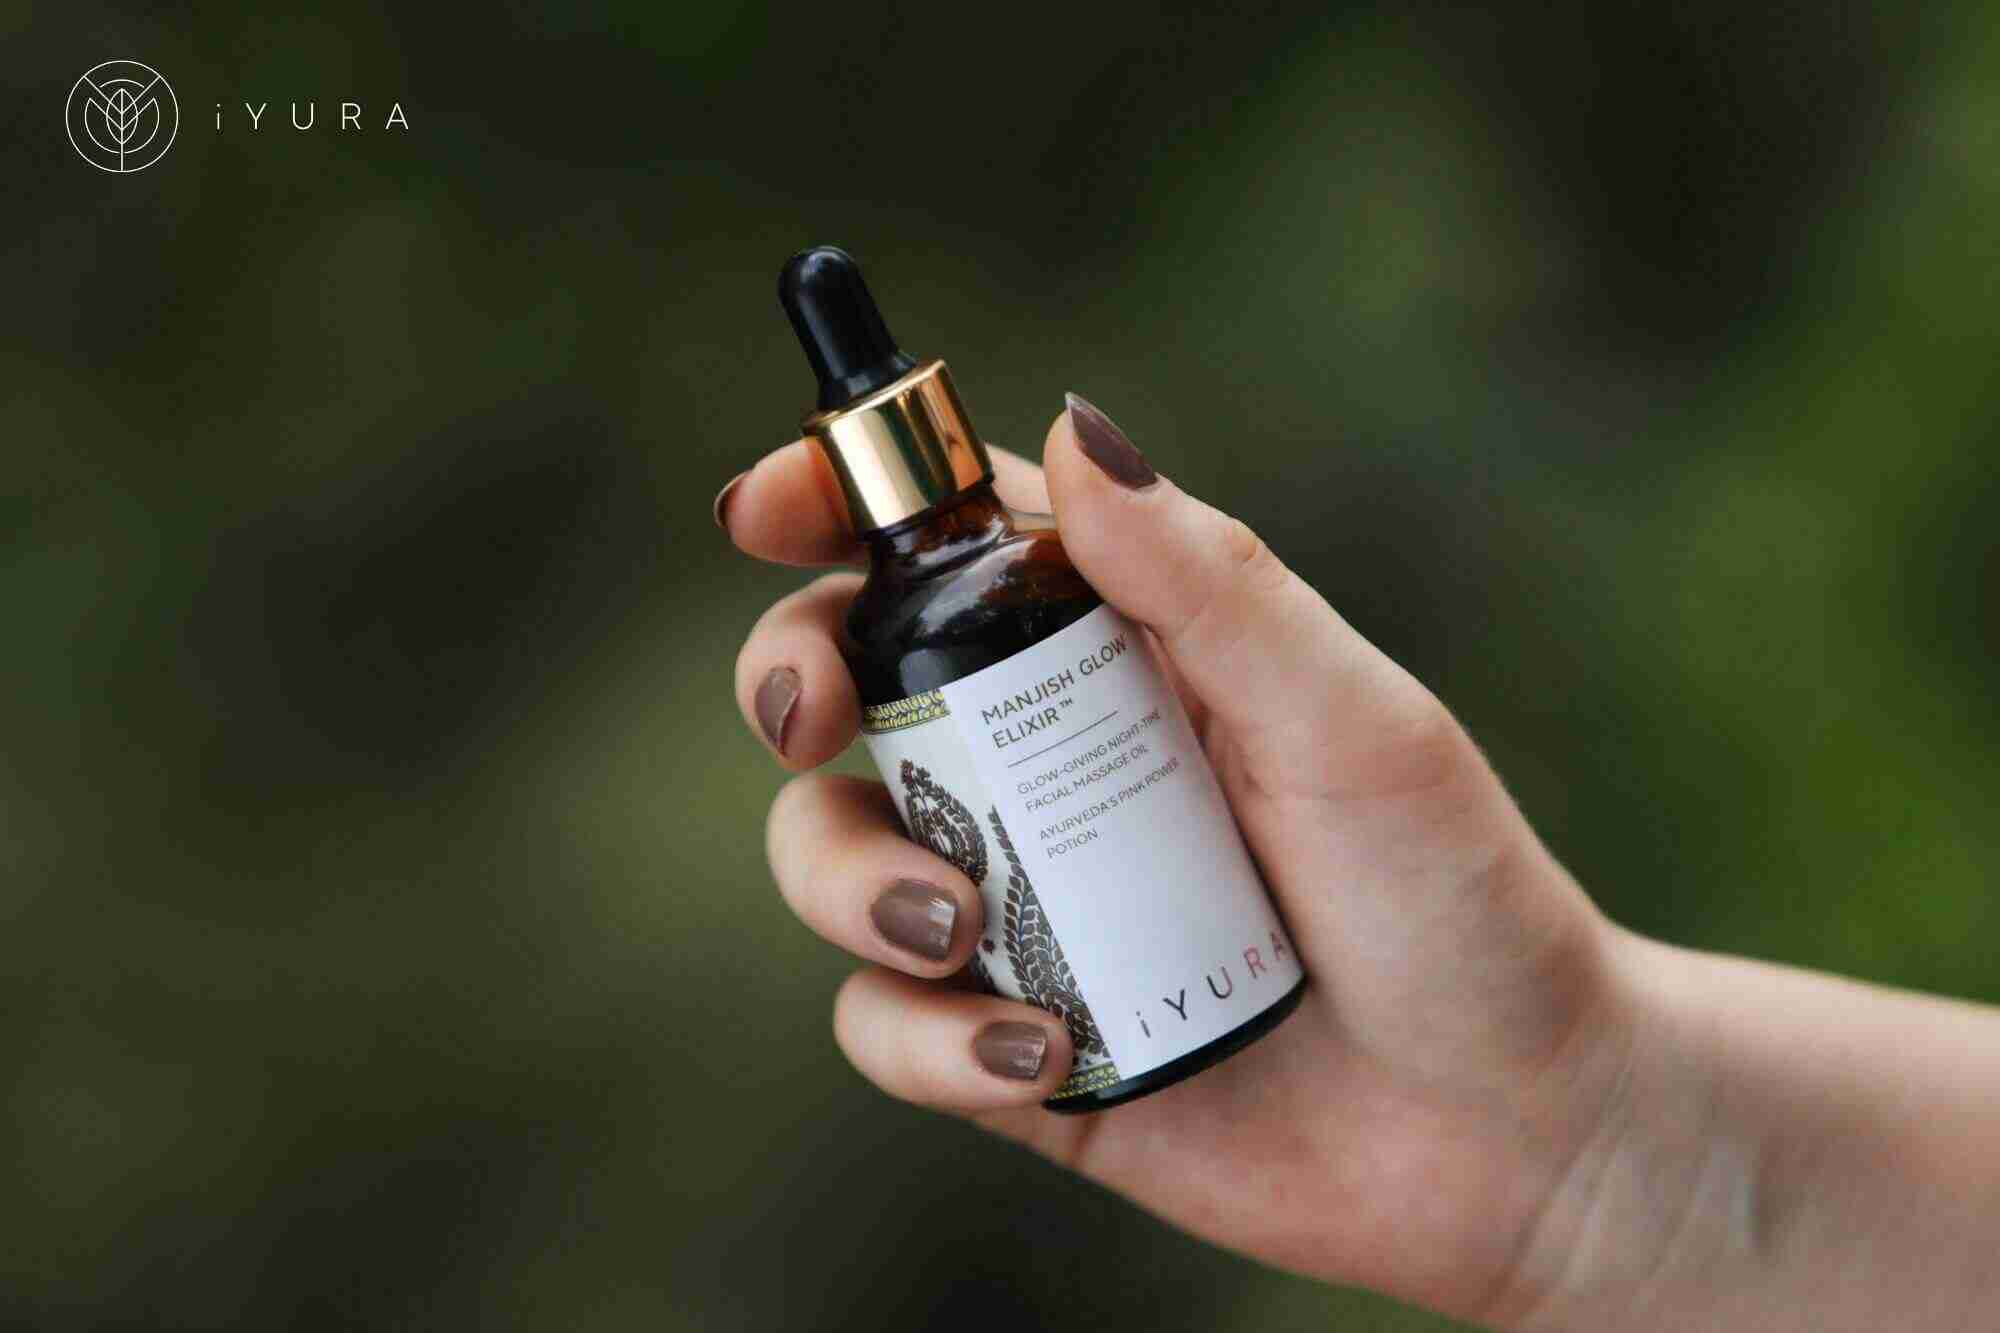 iYURA Manjish Glow Elixir - 4 drops, 5 minutes every night for a natural, no makeup glow!